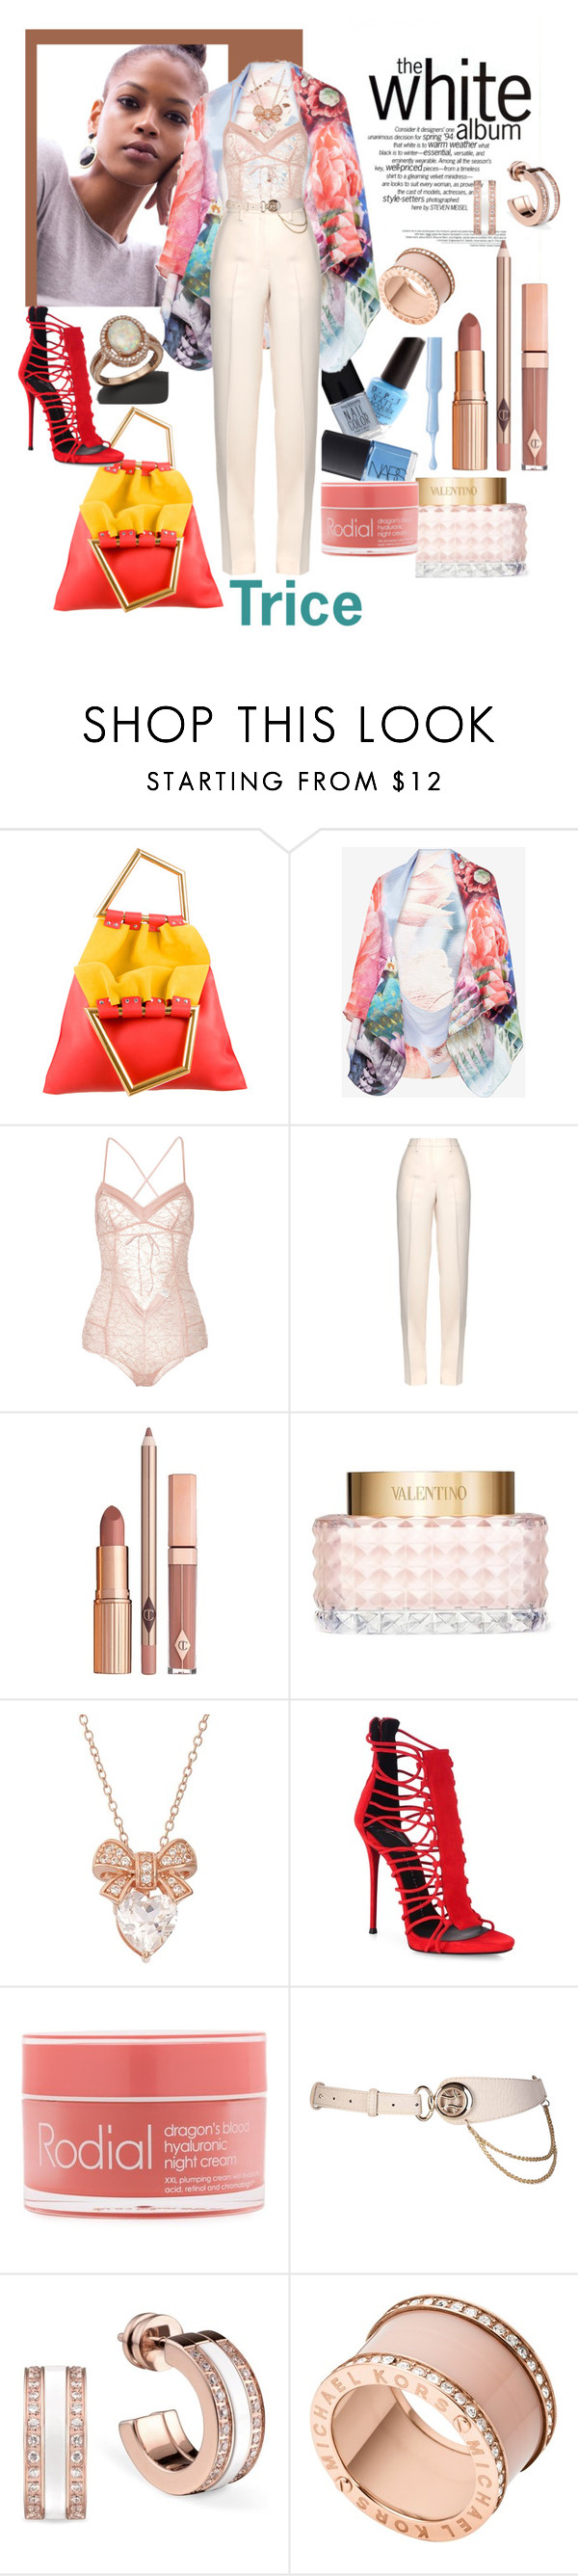 """""""Album"""" by tricewillbe ❤ liked on Polyvore featuring CÉLINE, Ted Baker, Madame Aime, Jil Sander, Dolce Vita, Valentino, Giuseppe Zanotti, Rodial, Michael Kors and Bloomingdale's"""